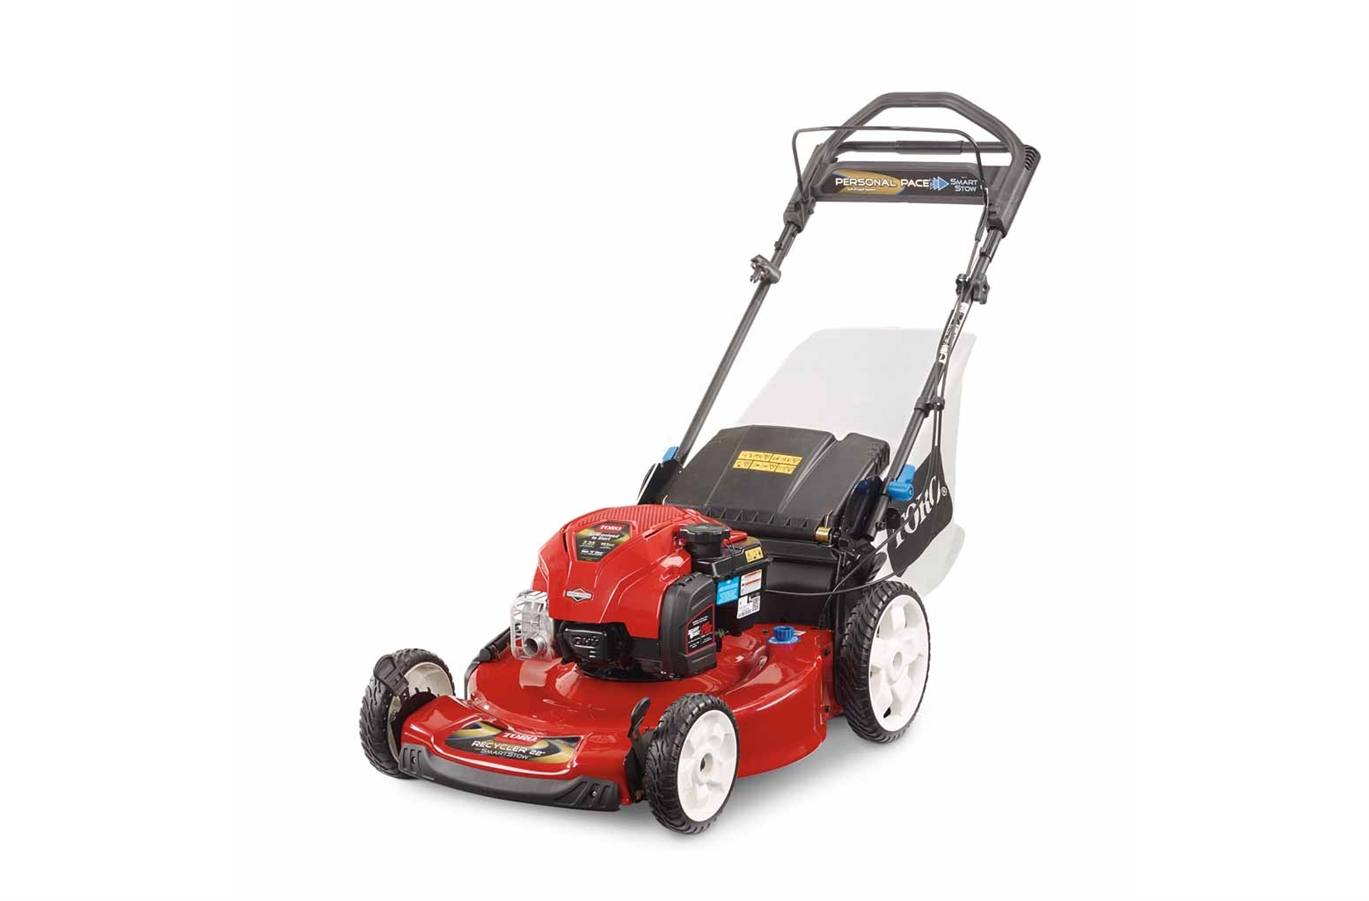 2018 Briggs & Stratton Mow N' Stow® Series Mow N' Stow for